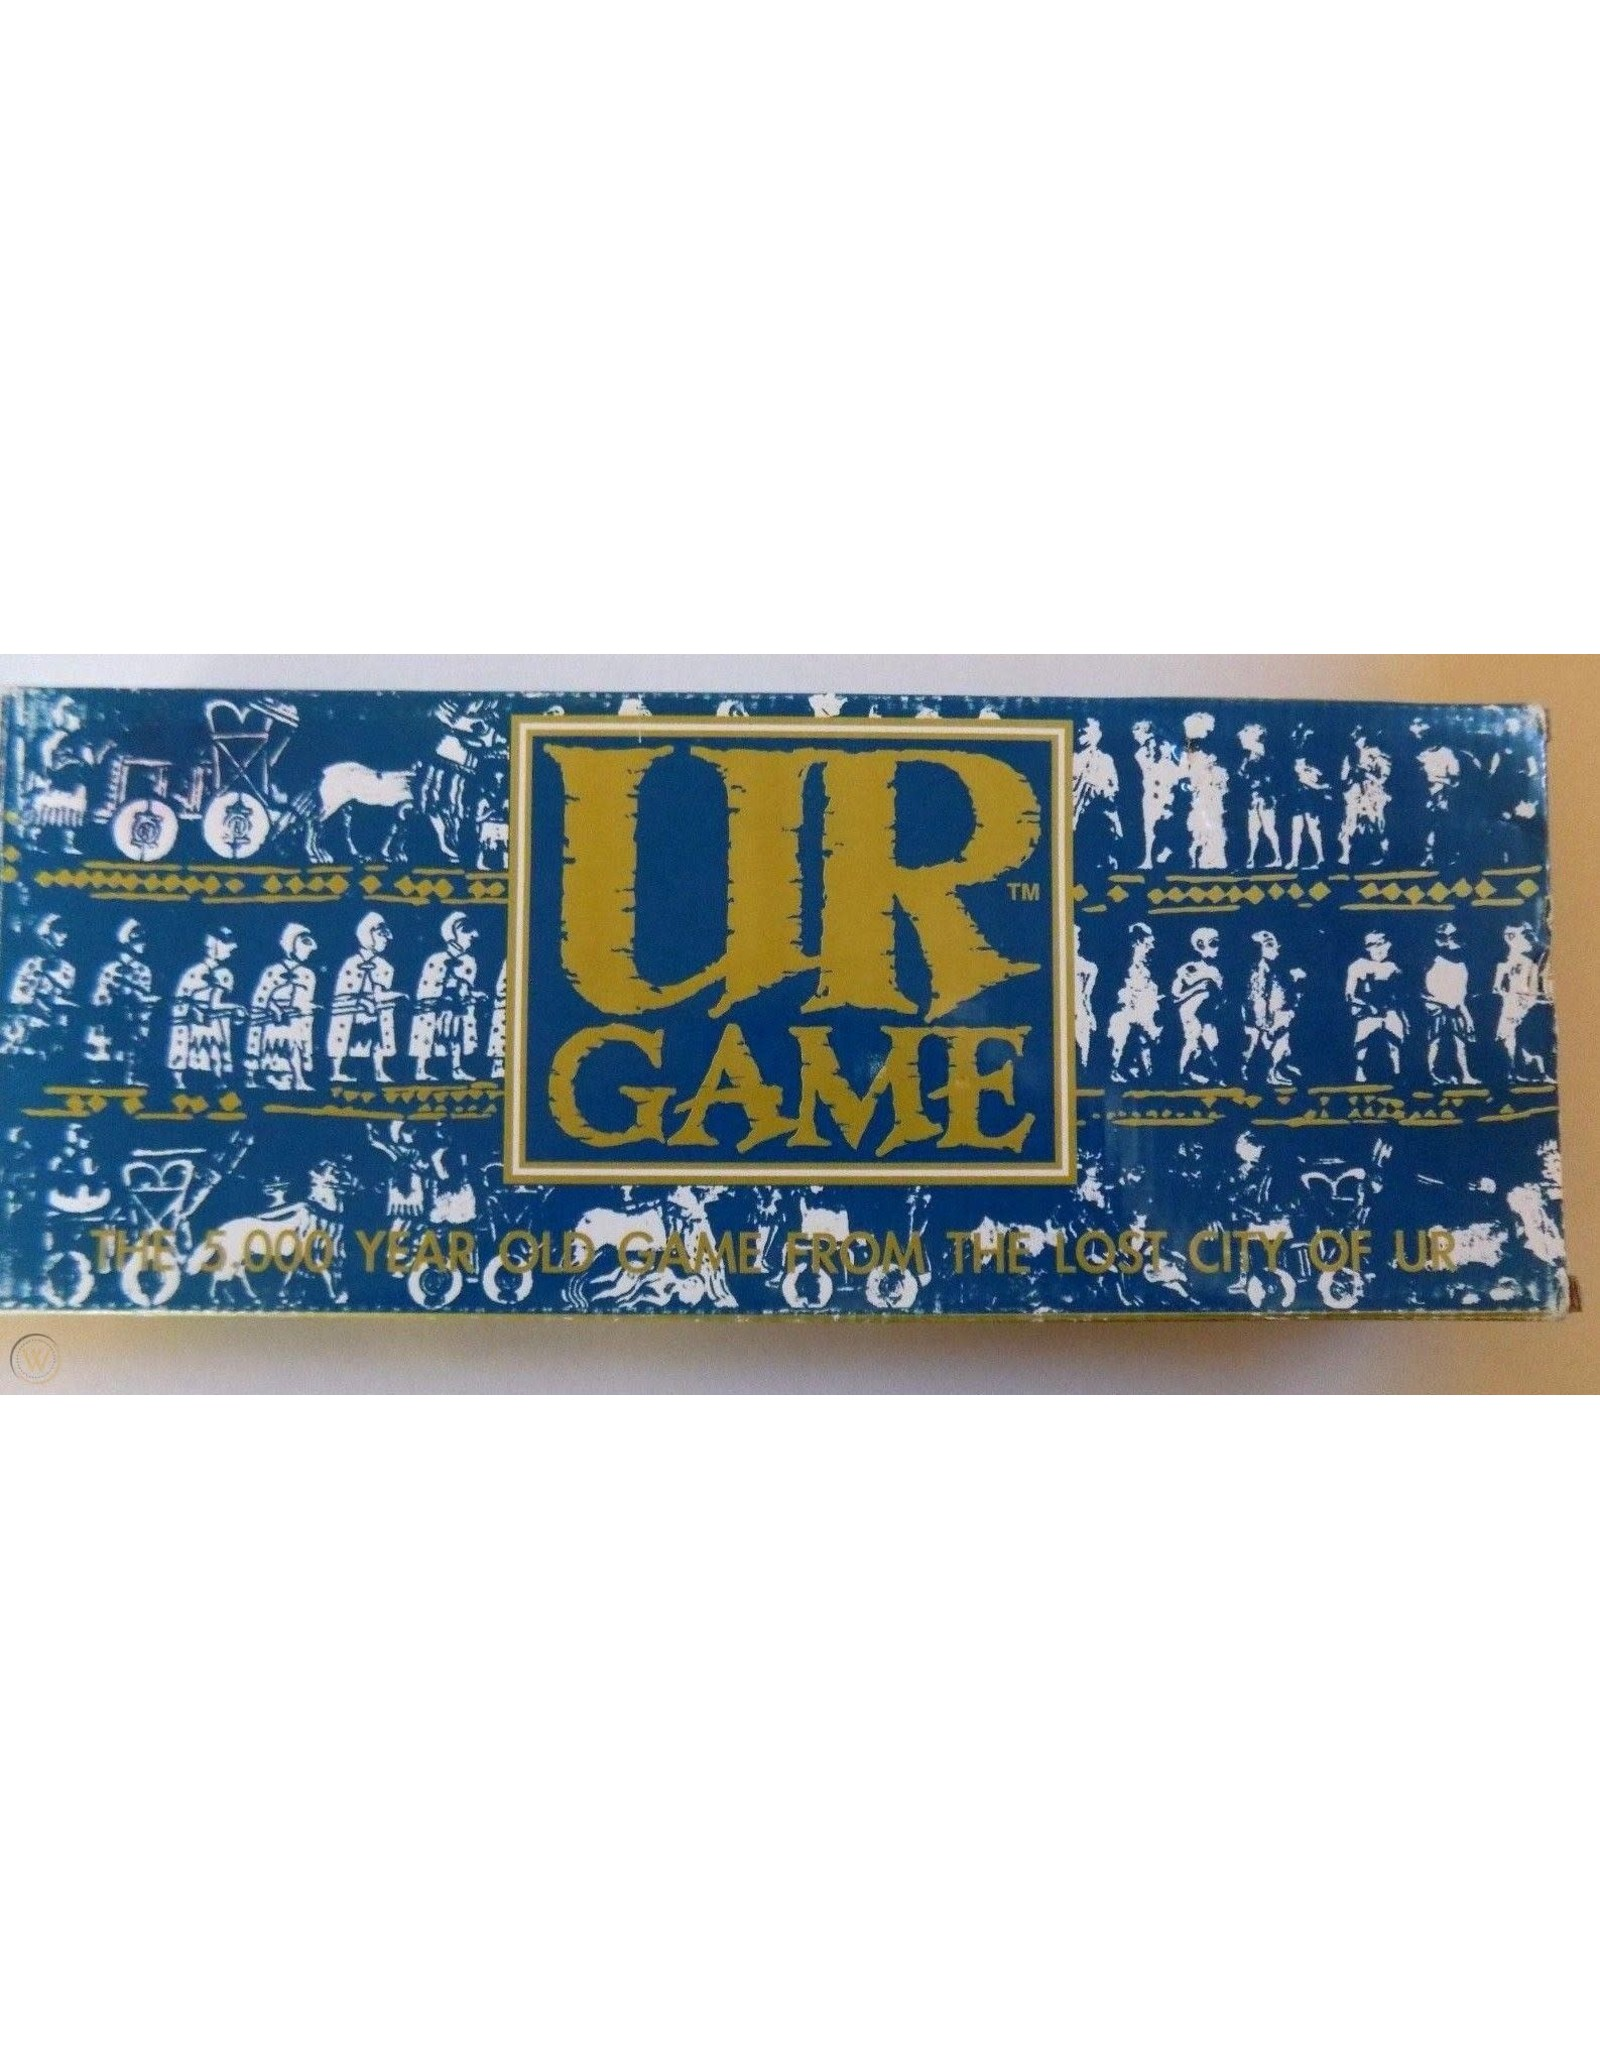 Wood Expressions The Ur Game